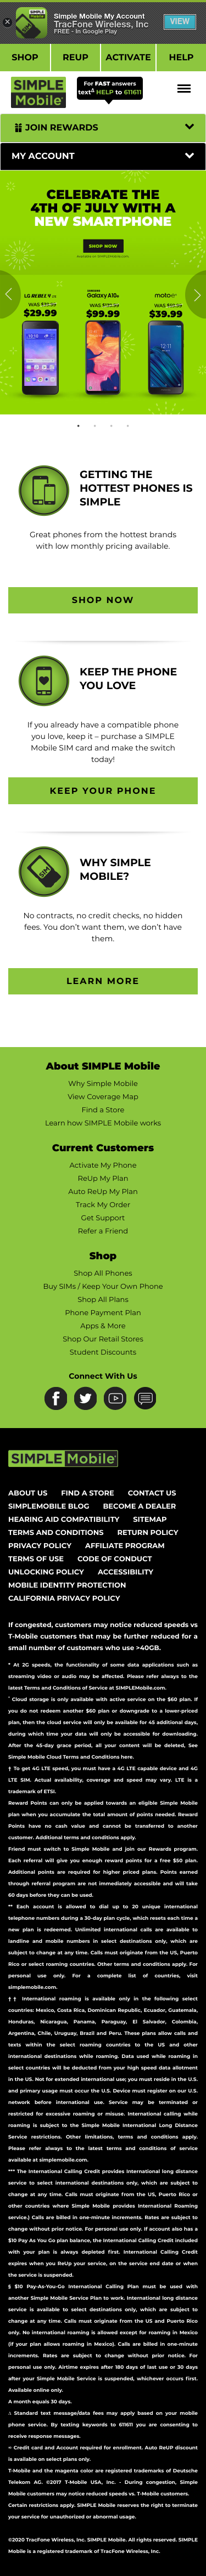 SIMPLE Mobile Coupon